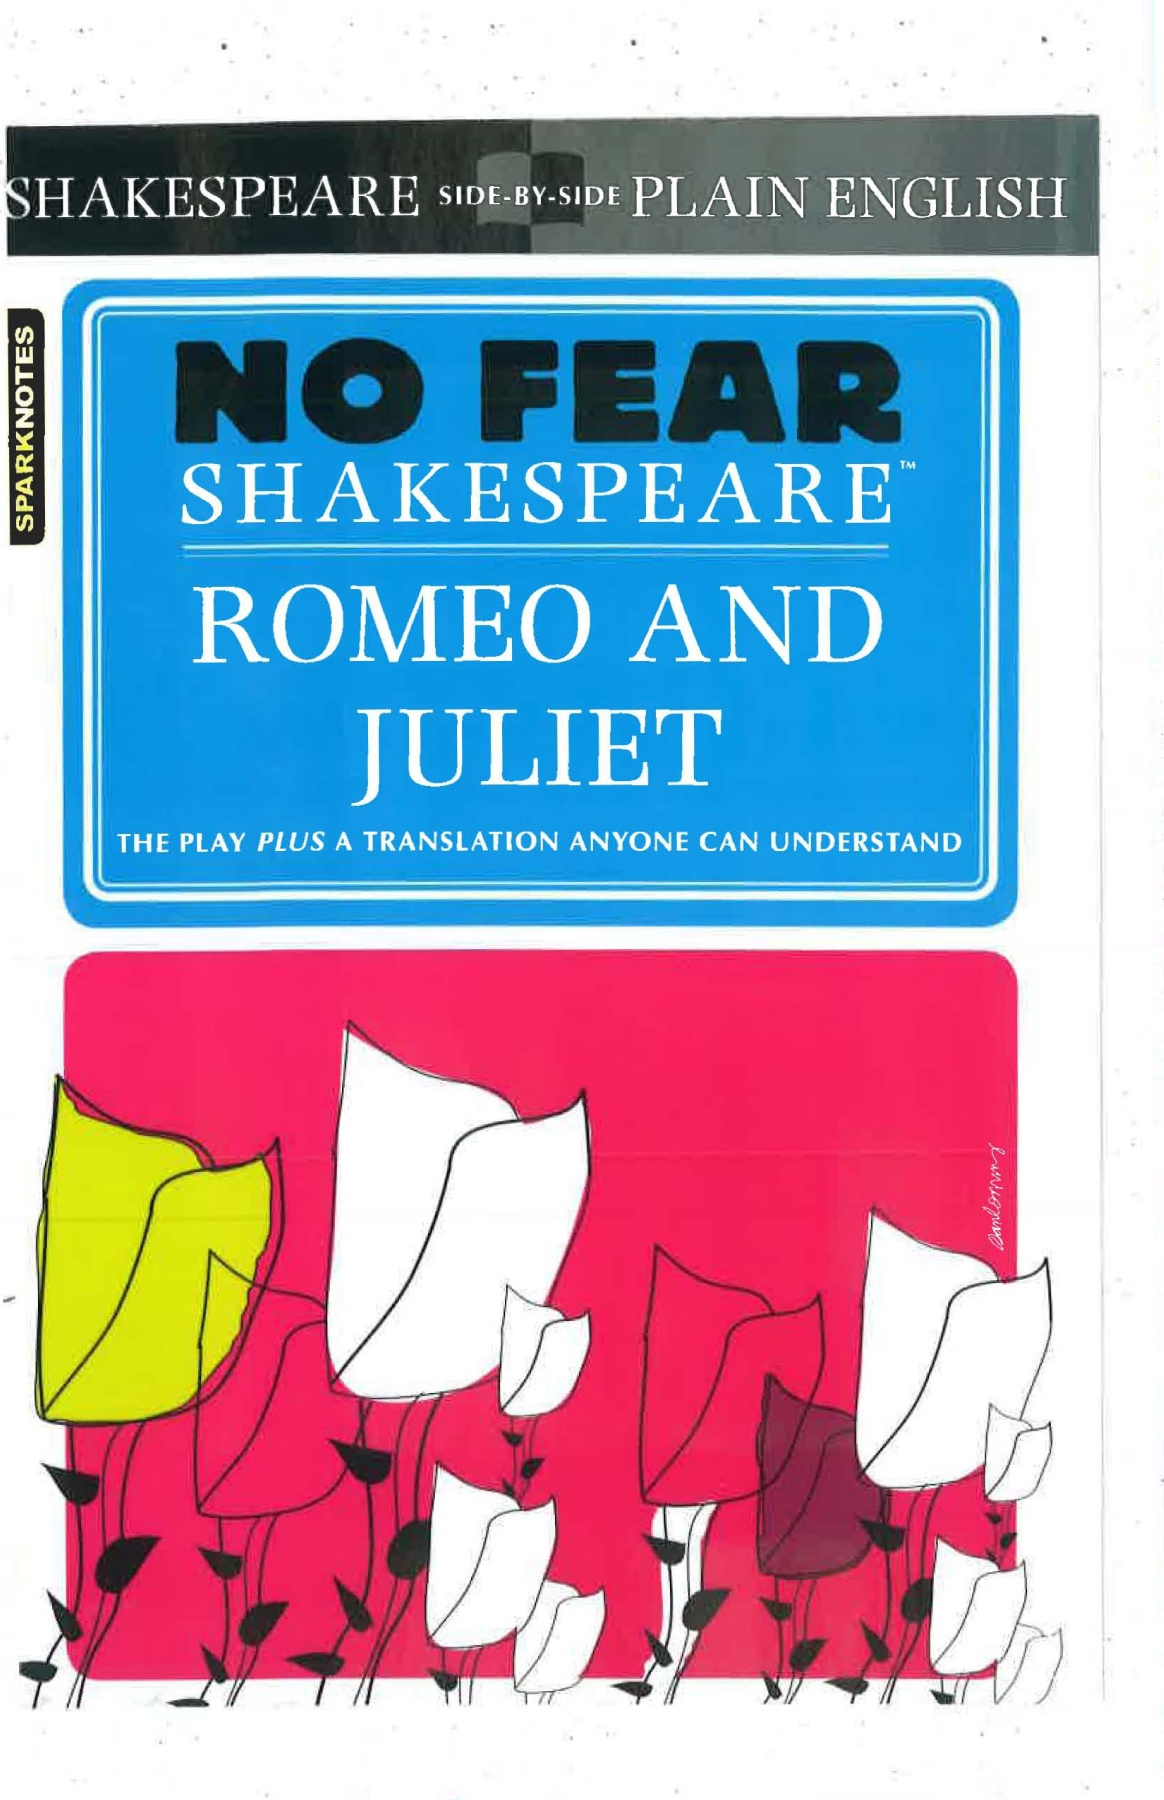 6f2baf38e No Fear Shakespeare - Romeo and Juliet Pages 151 - 200 - Text ...